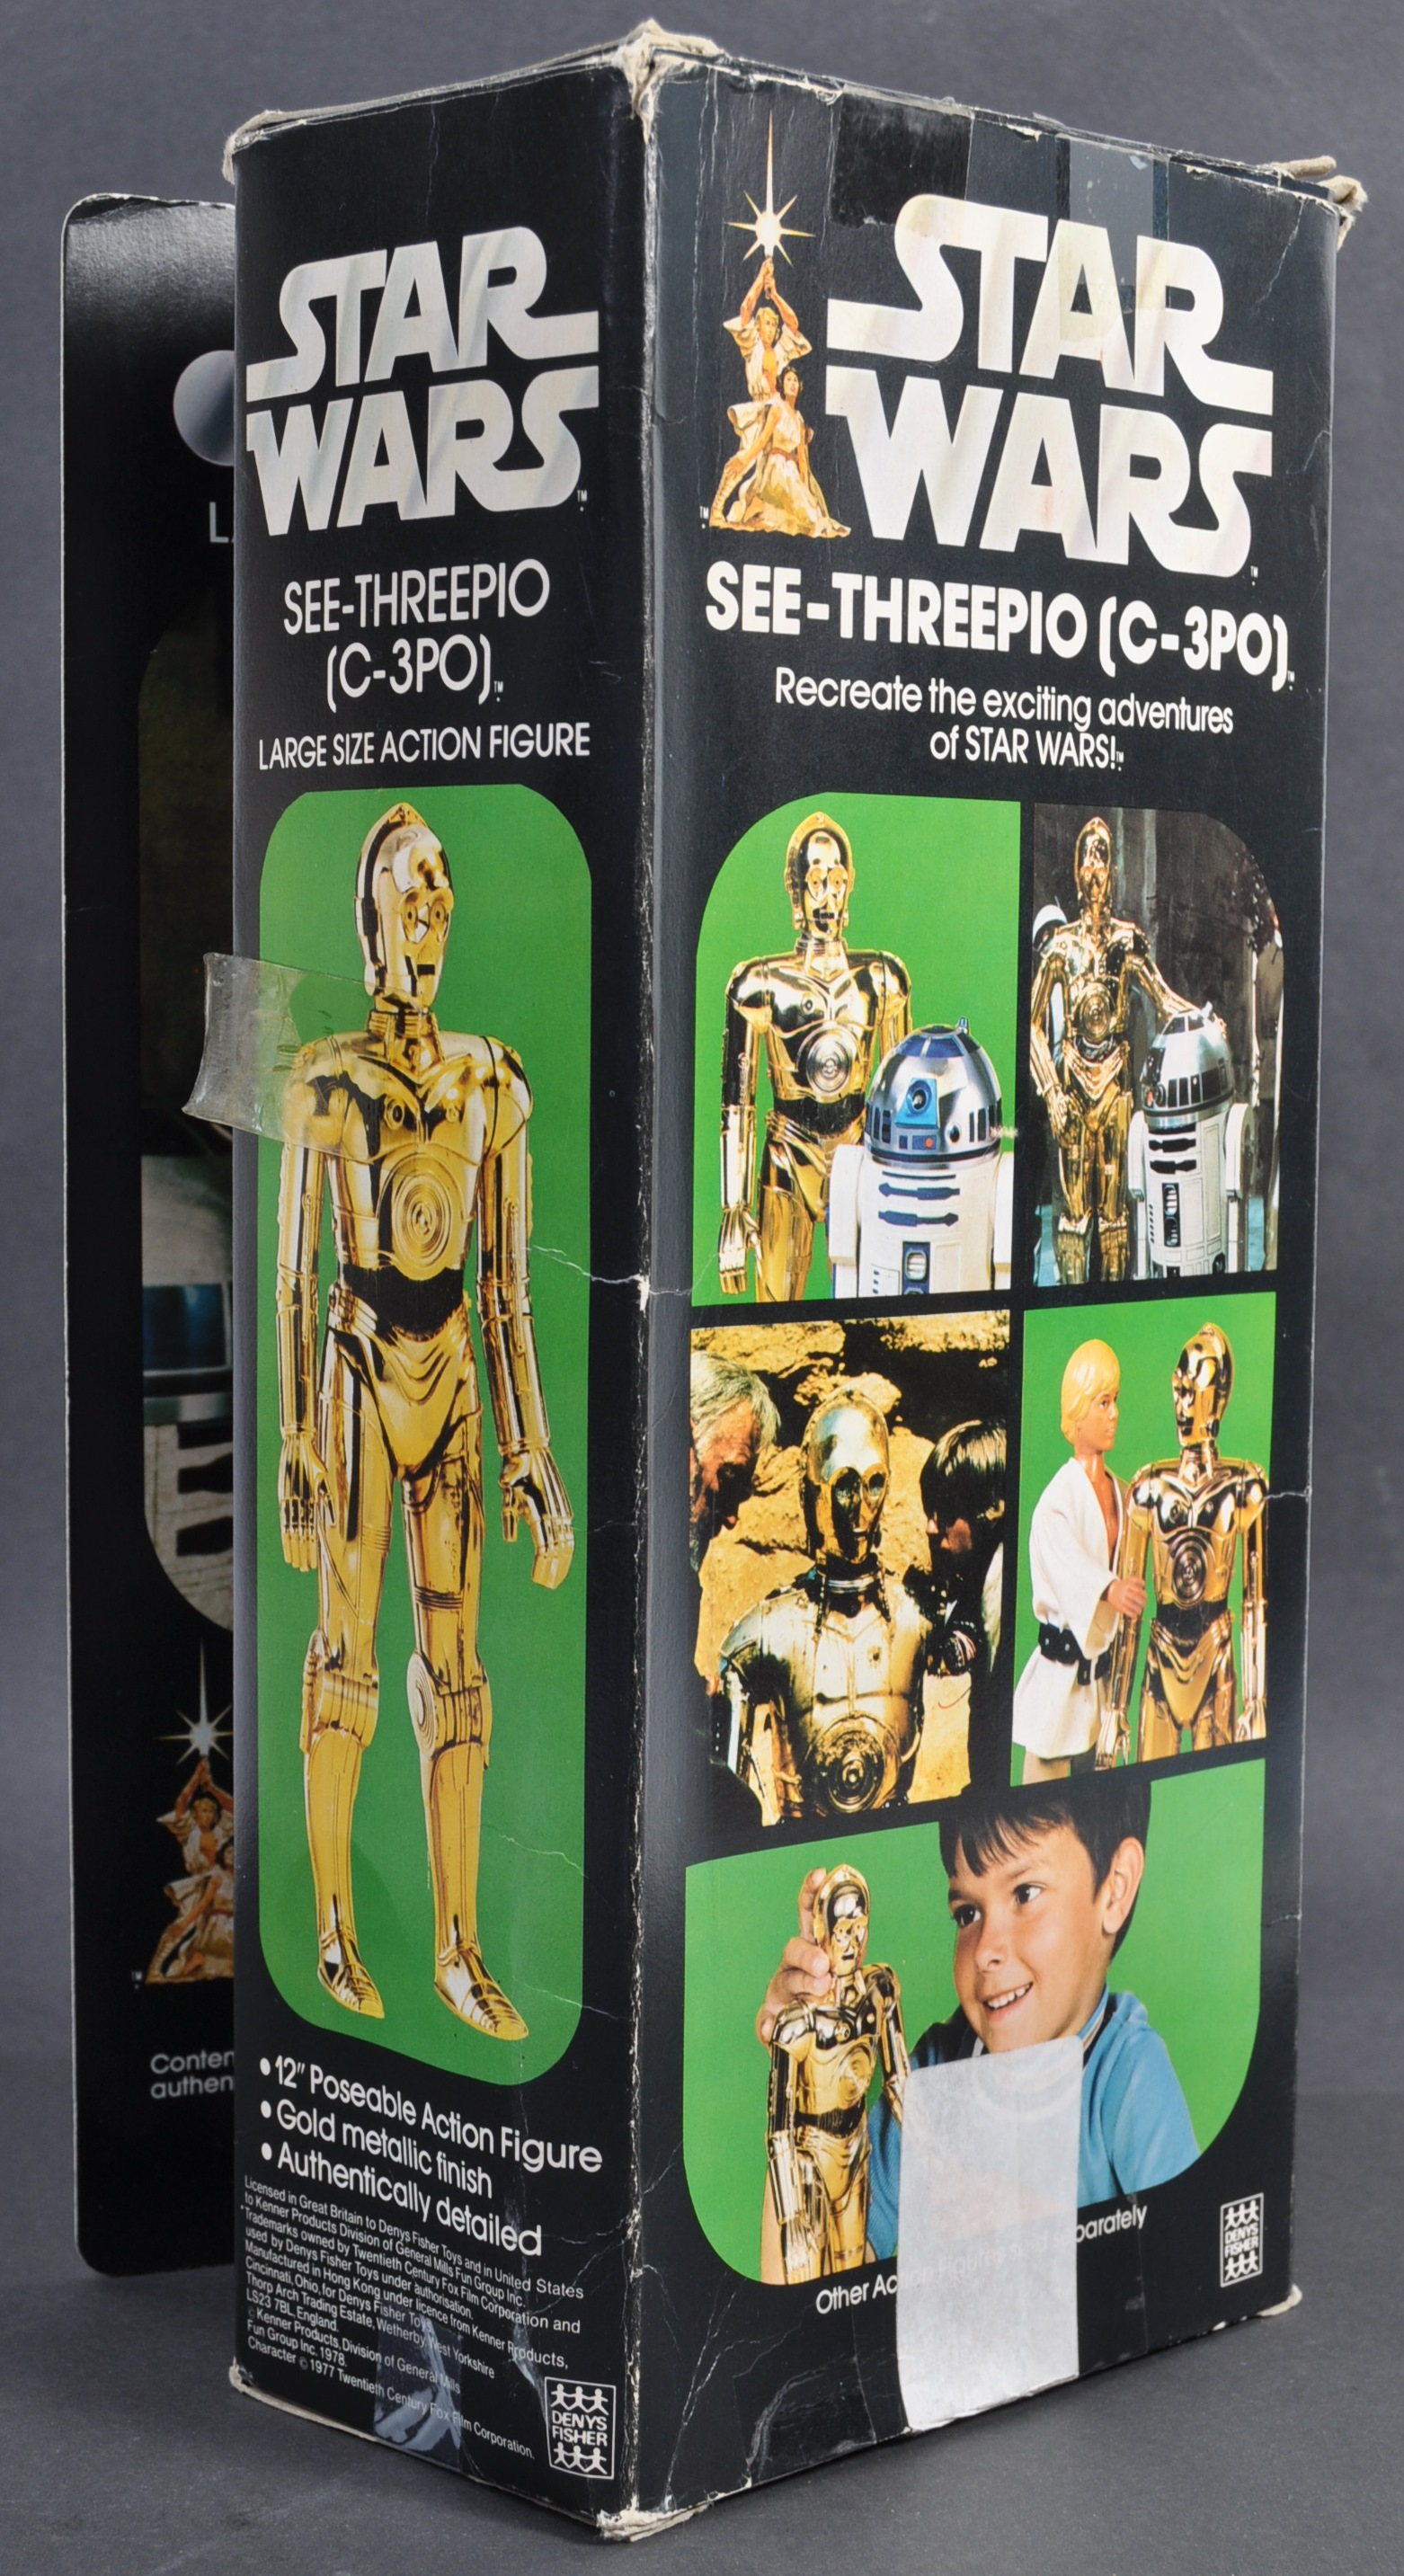 """STAR WARS - RARE DENYS FISHER 12"""" C3PO BOXED ACTION FIGURE - Image 3 of 6"""